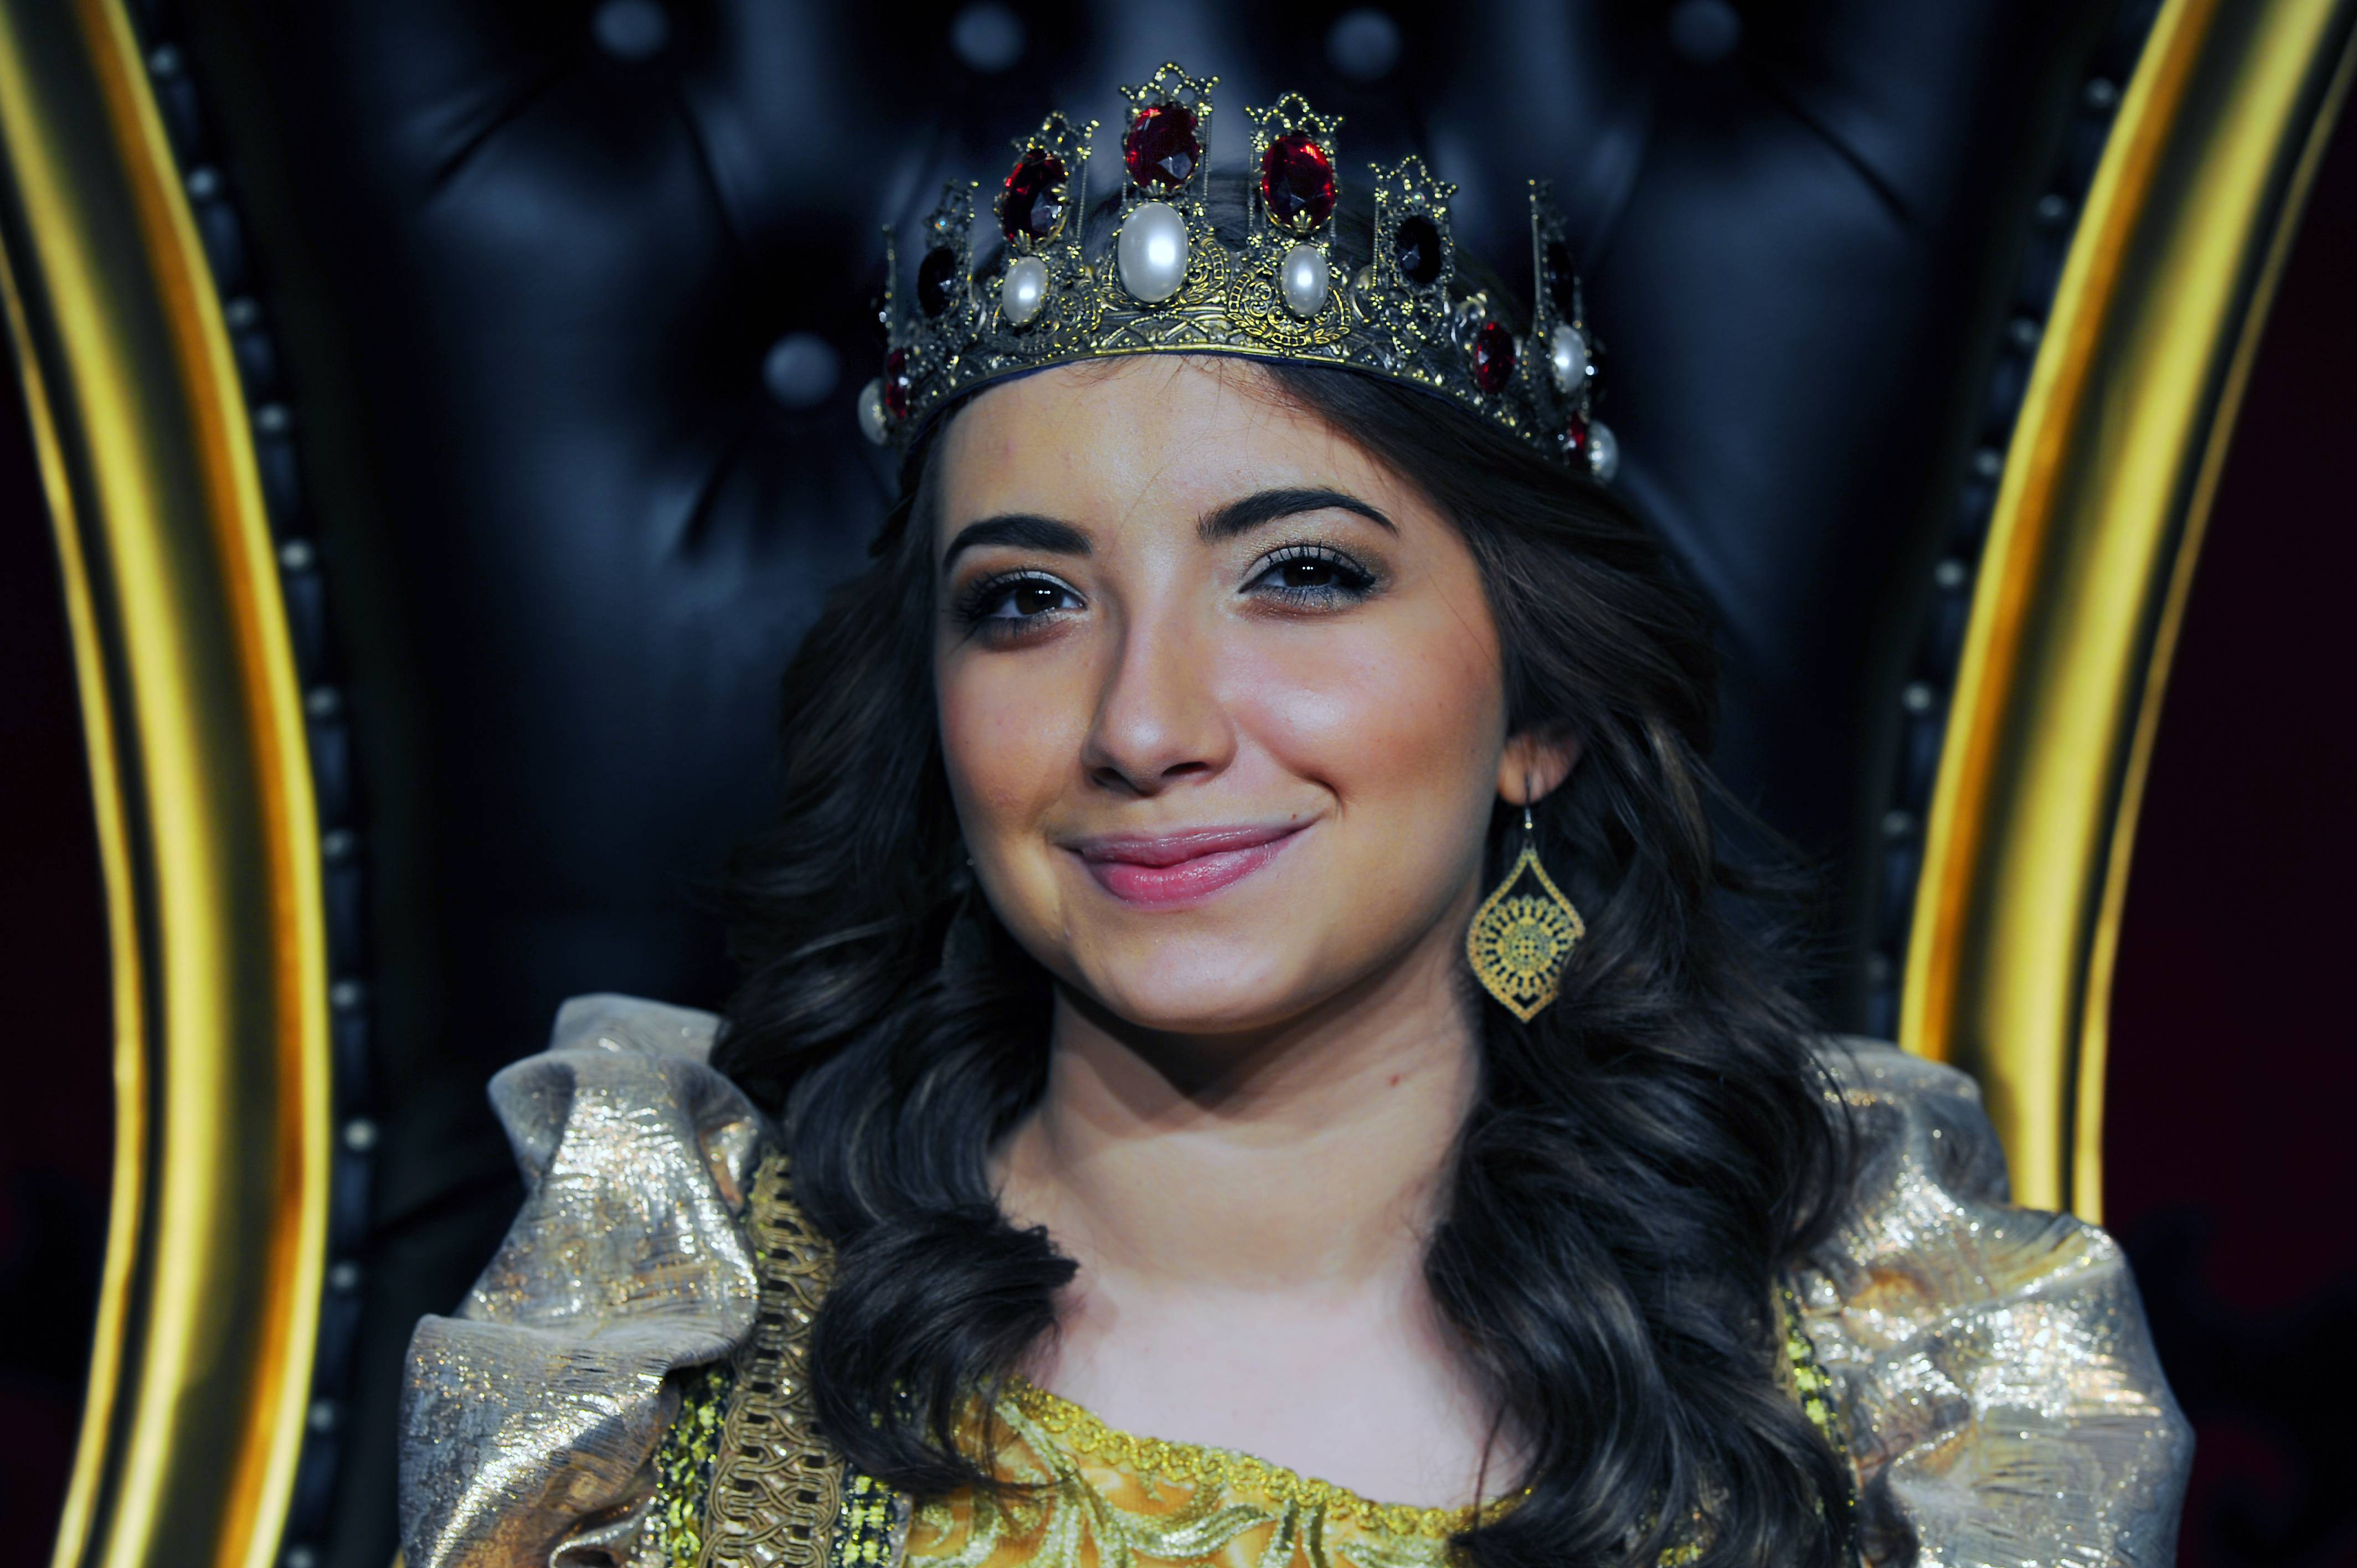 Sara Schubring, 24, settles into her throne at Medieval Times in Schaumburg. For the first time, the dinner show will feature a queen as its sole reigning monarch.